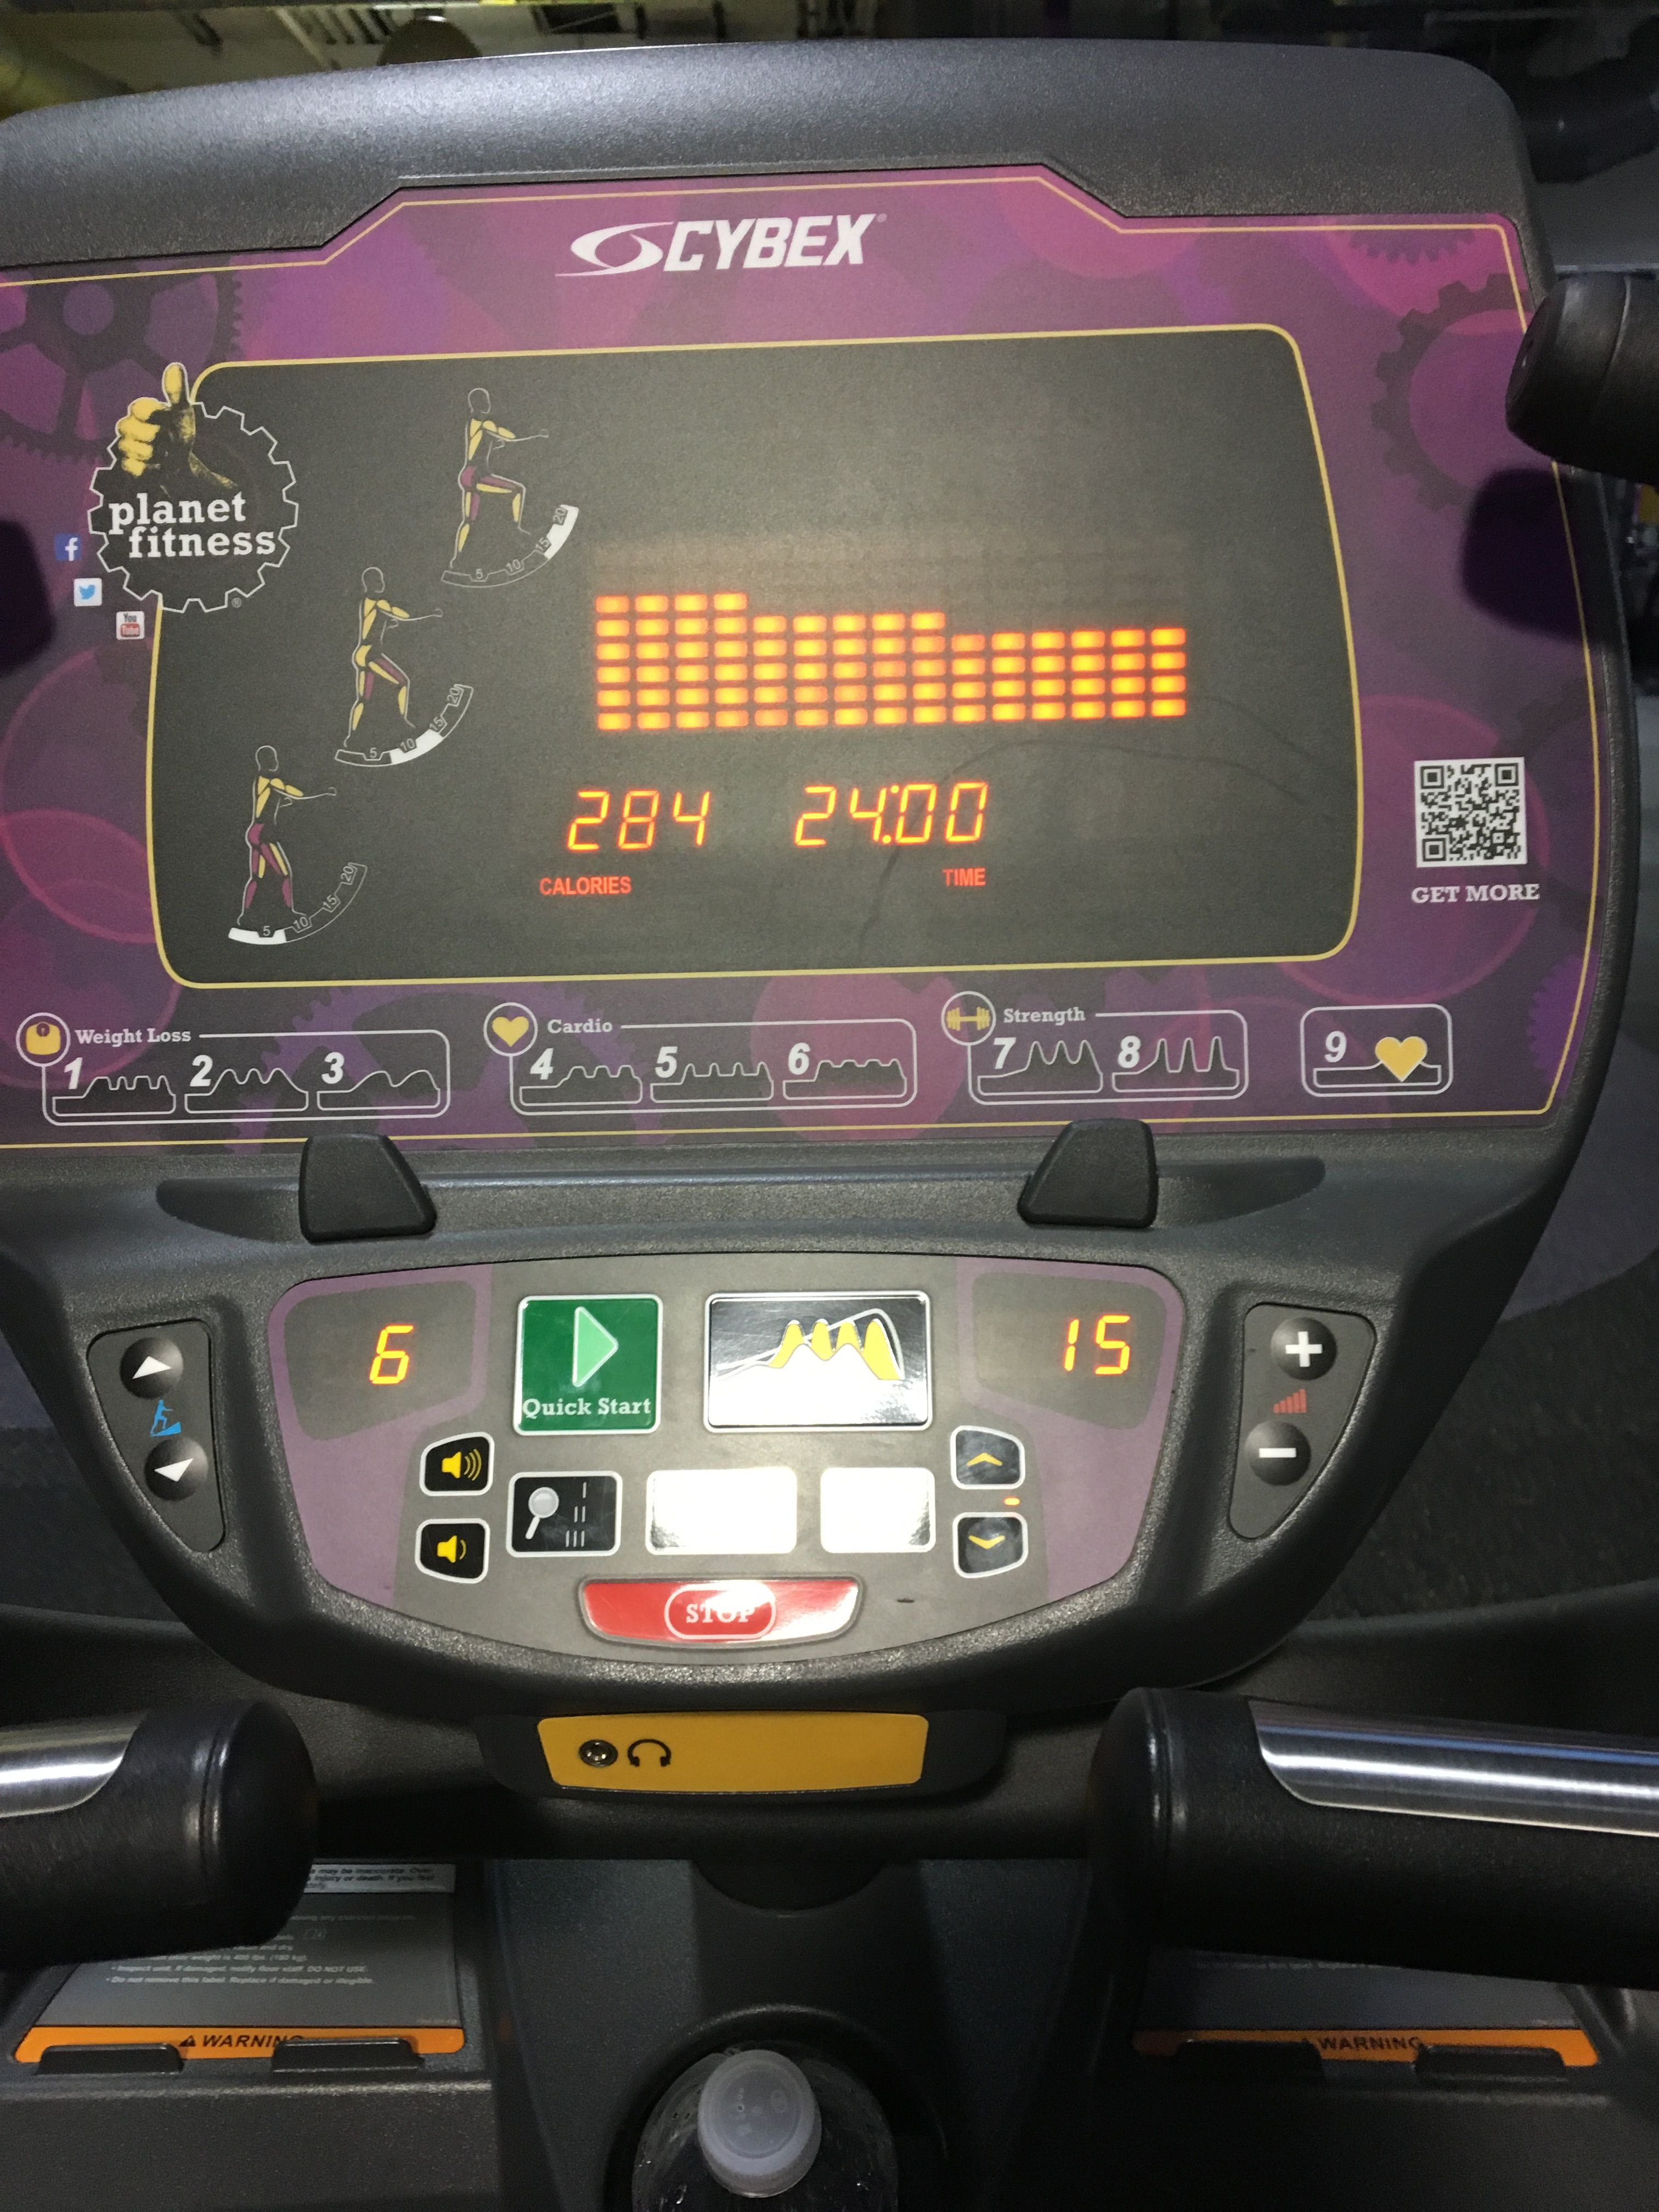 125 arc trainer arc trainer fitness workout cardio